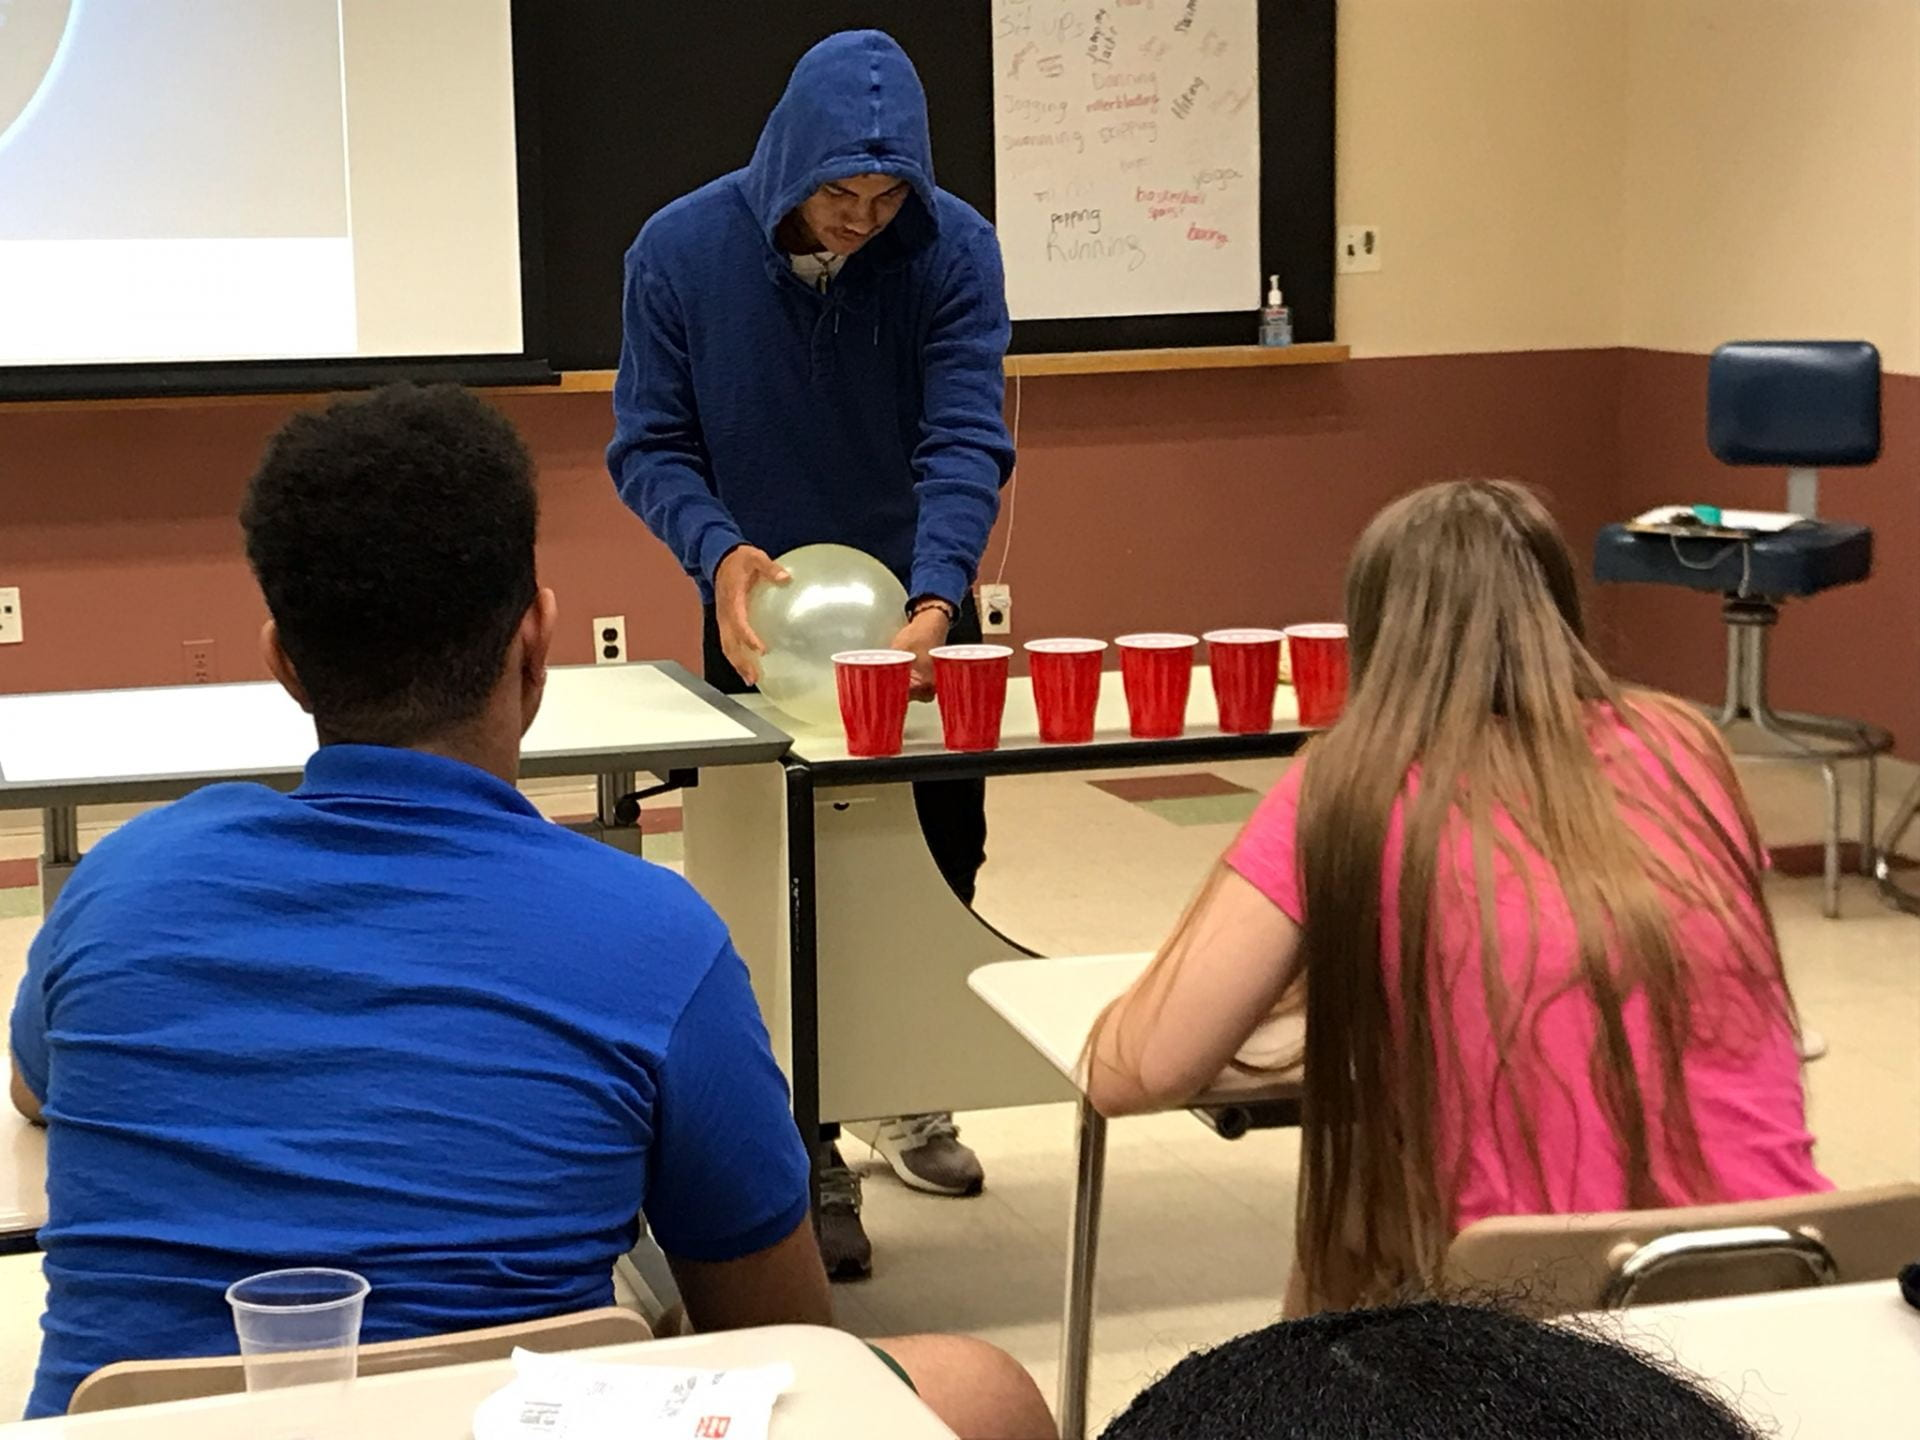 a student tries to blow away plastic cups